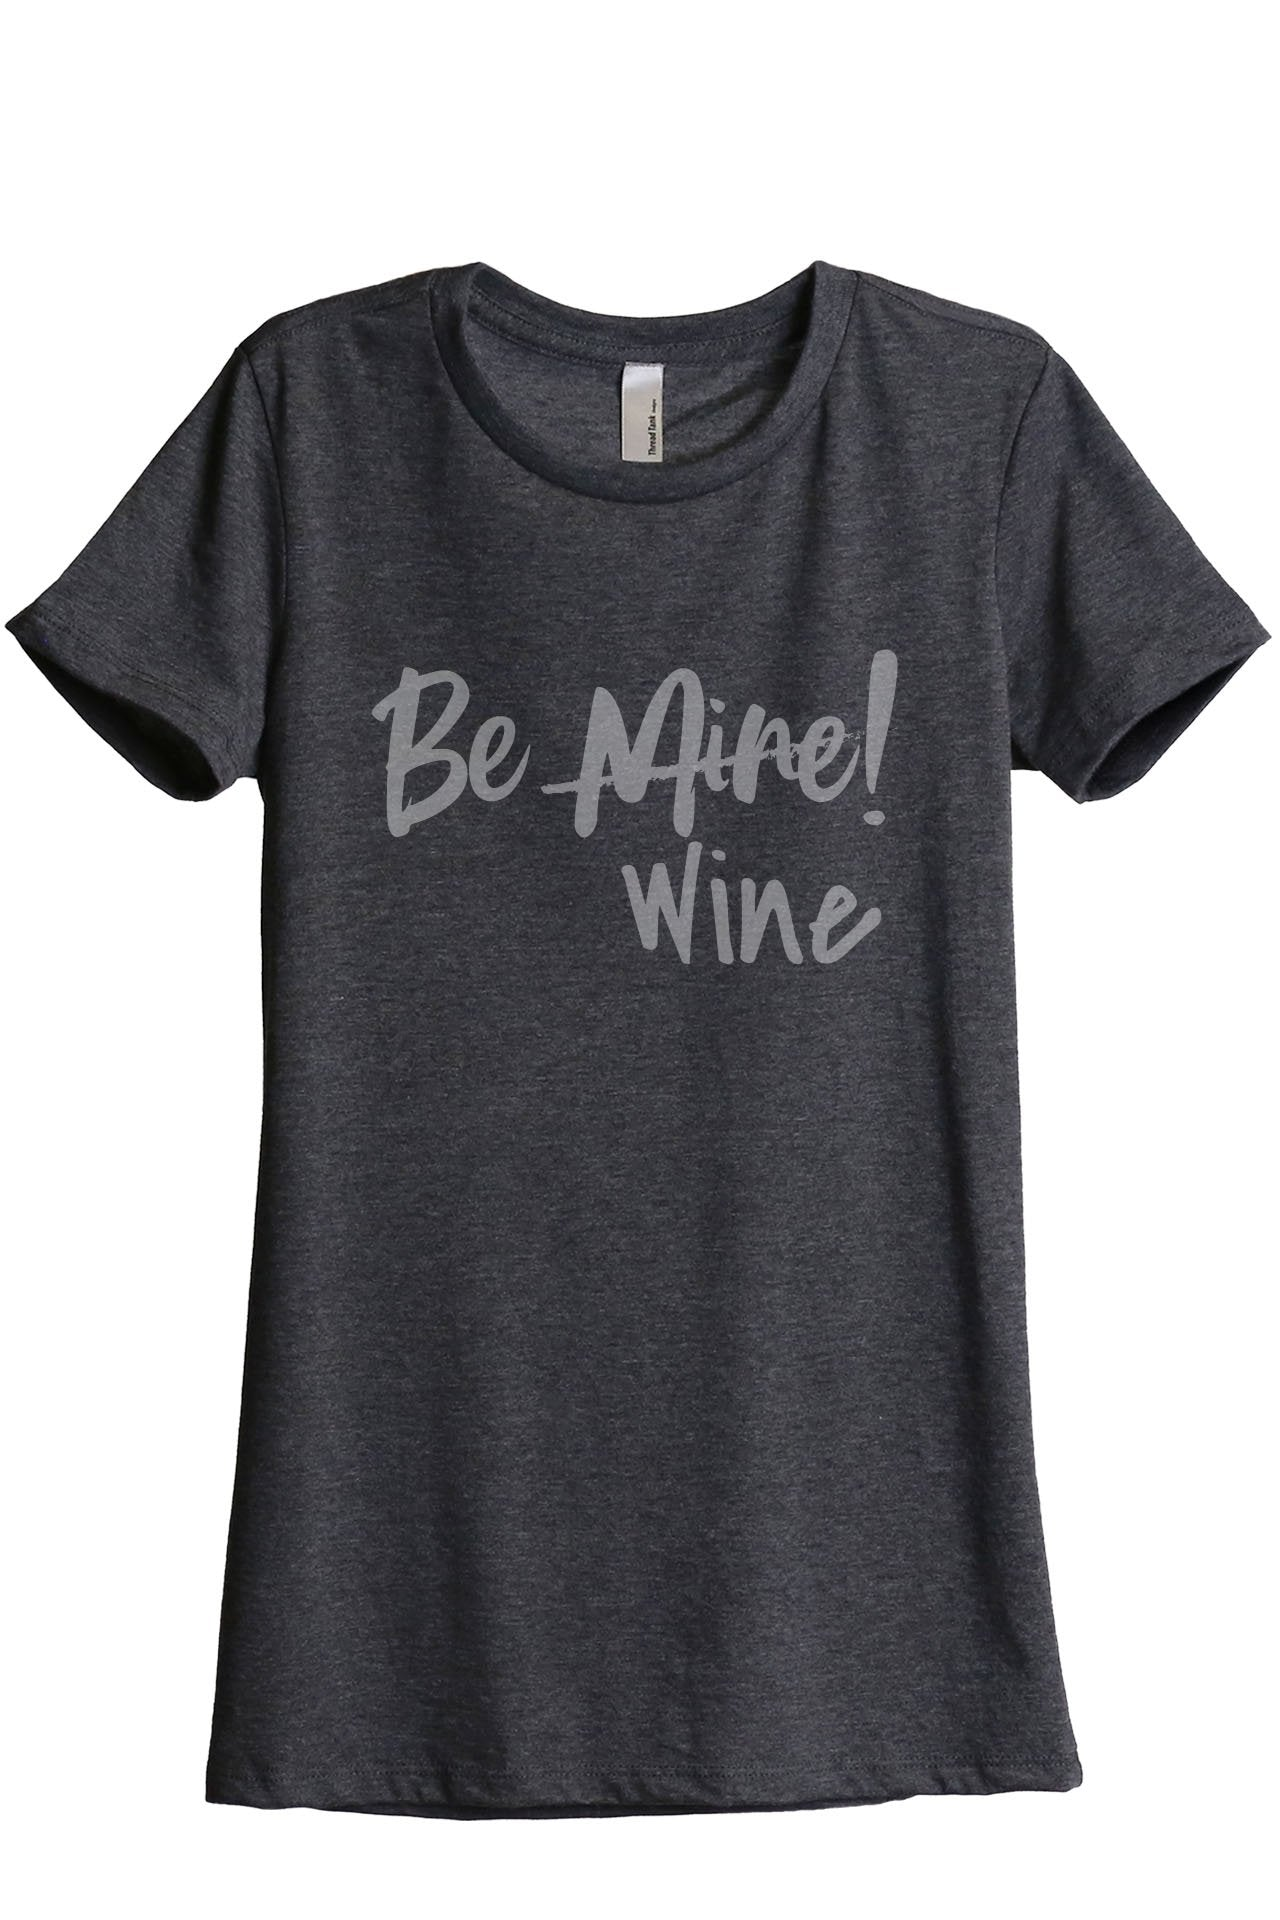 Be Mine Wine - Thread Tank | Stories You Can Wear | T-Shirts, Tank Tops and Sweatshirts